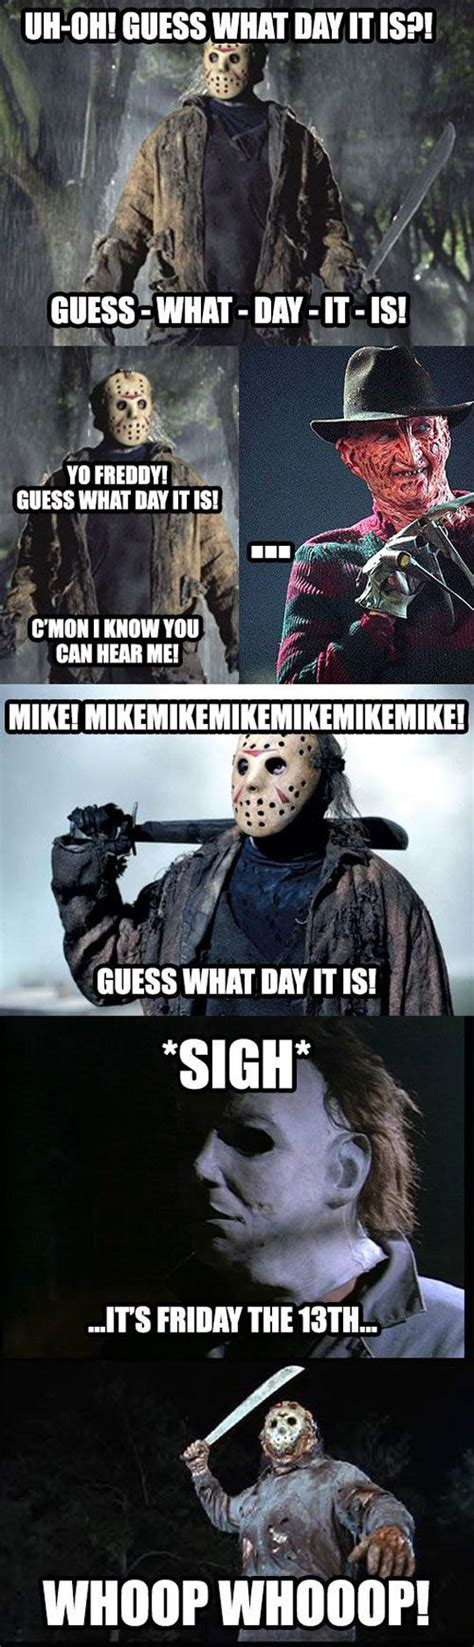 The Movie Friday Memes - best 25 friday the 13th ideas on pinterest jason voorhees jason voorhees film and halloween